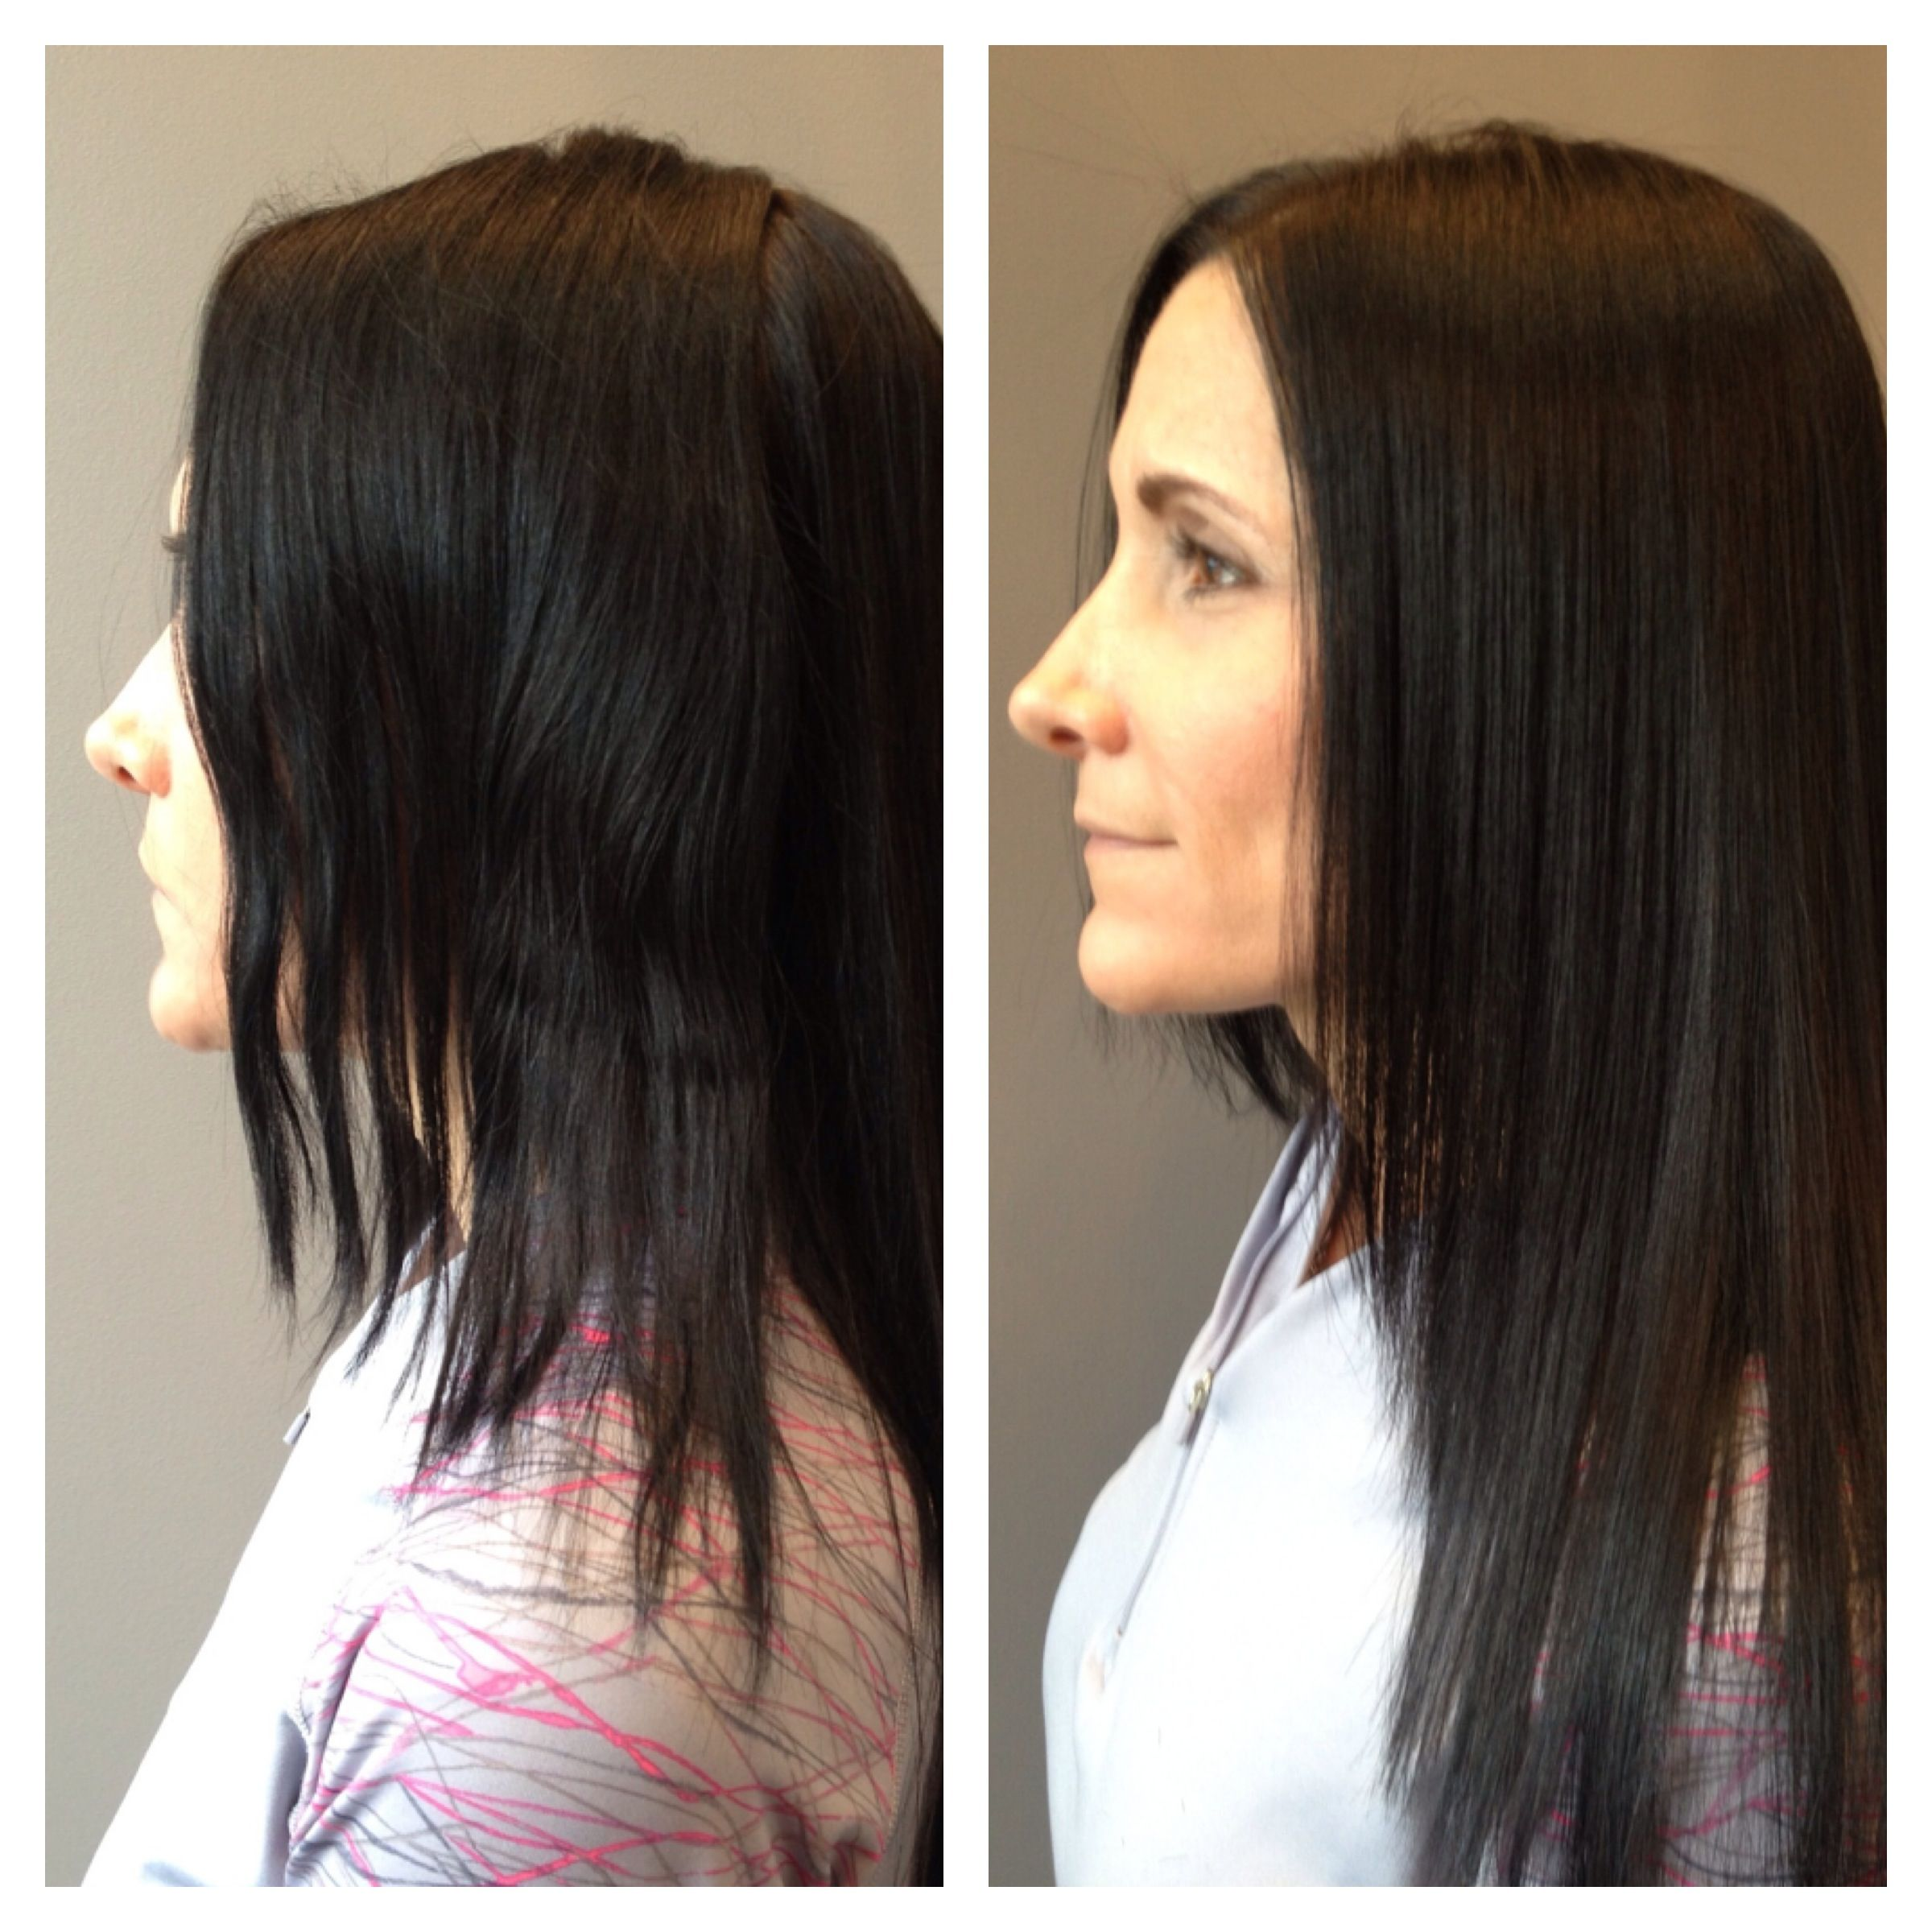 Before and after Great Lengths extensions Bryan s work